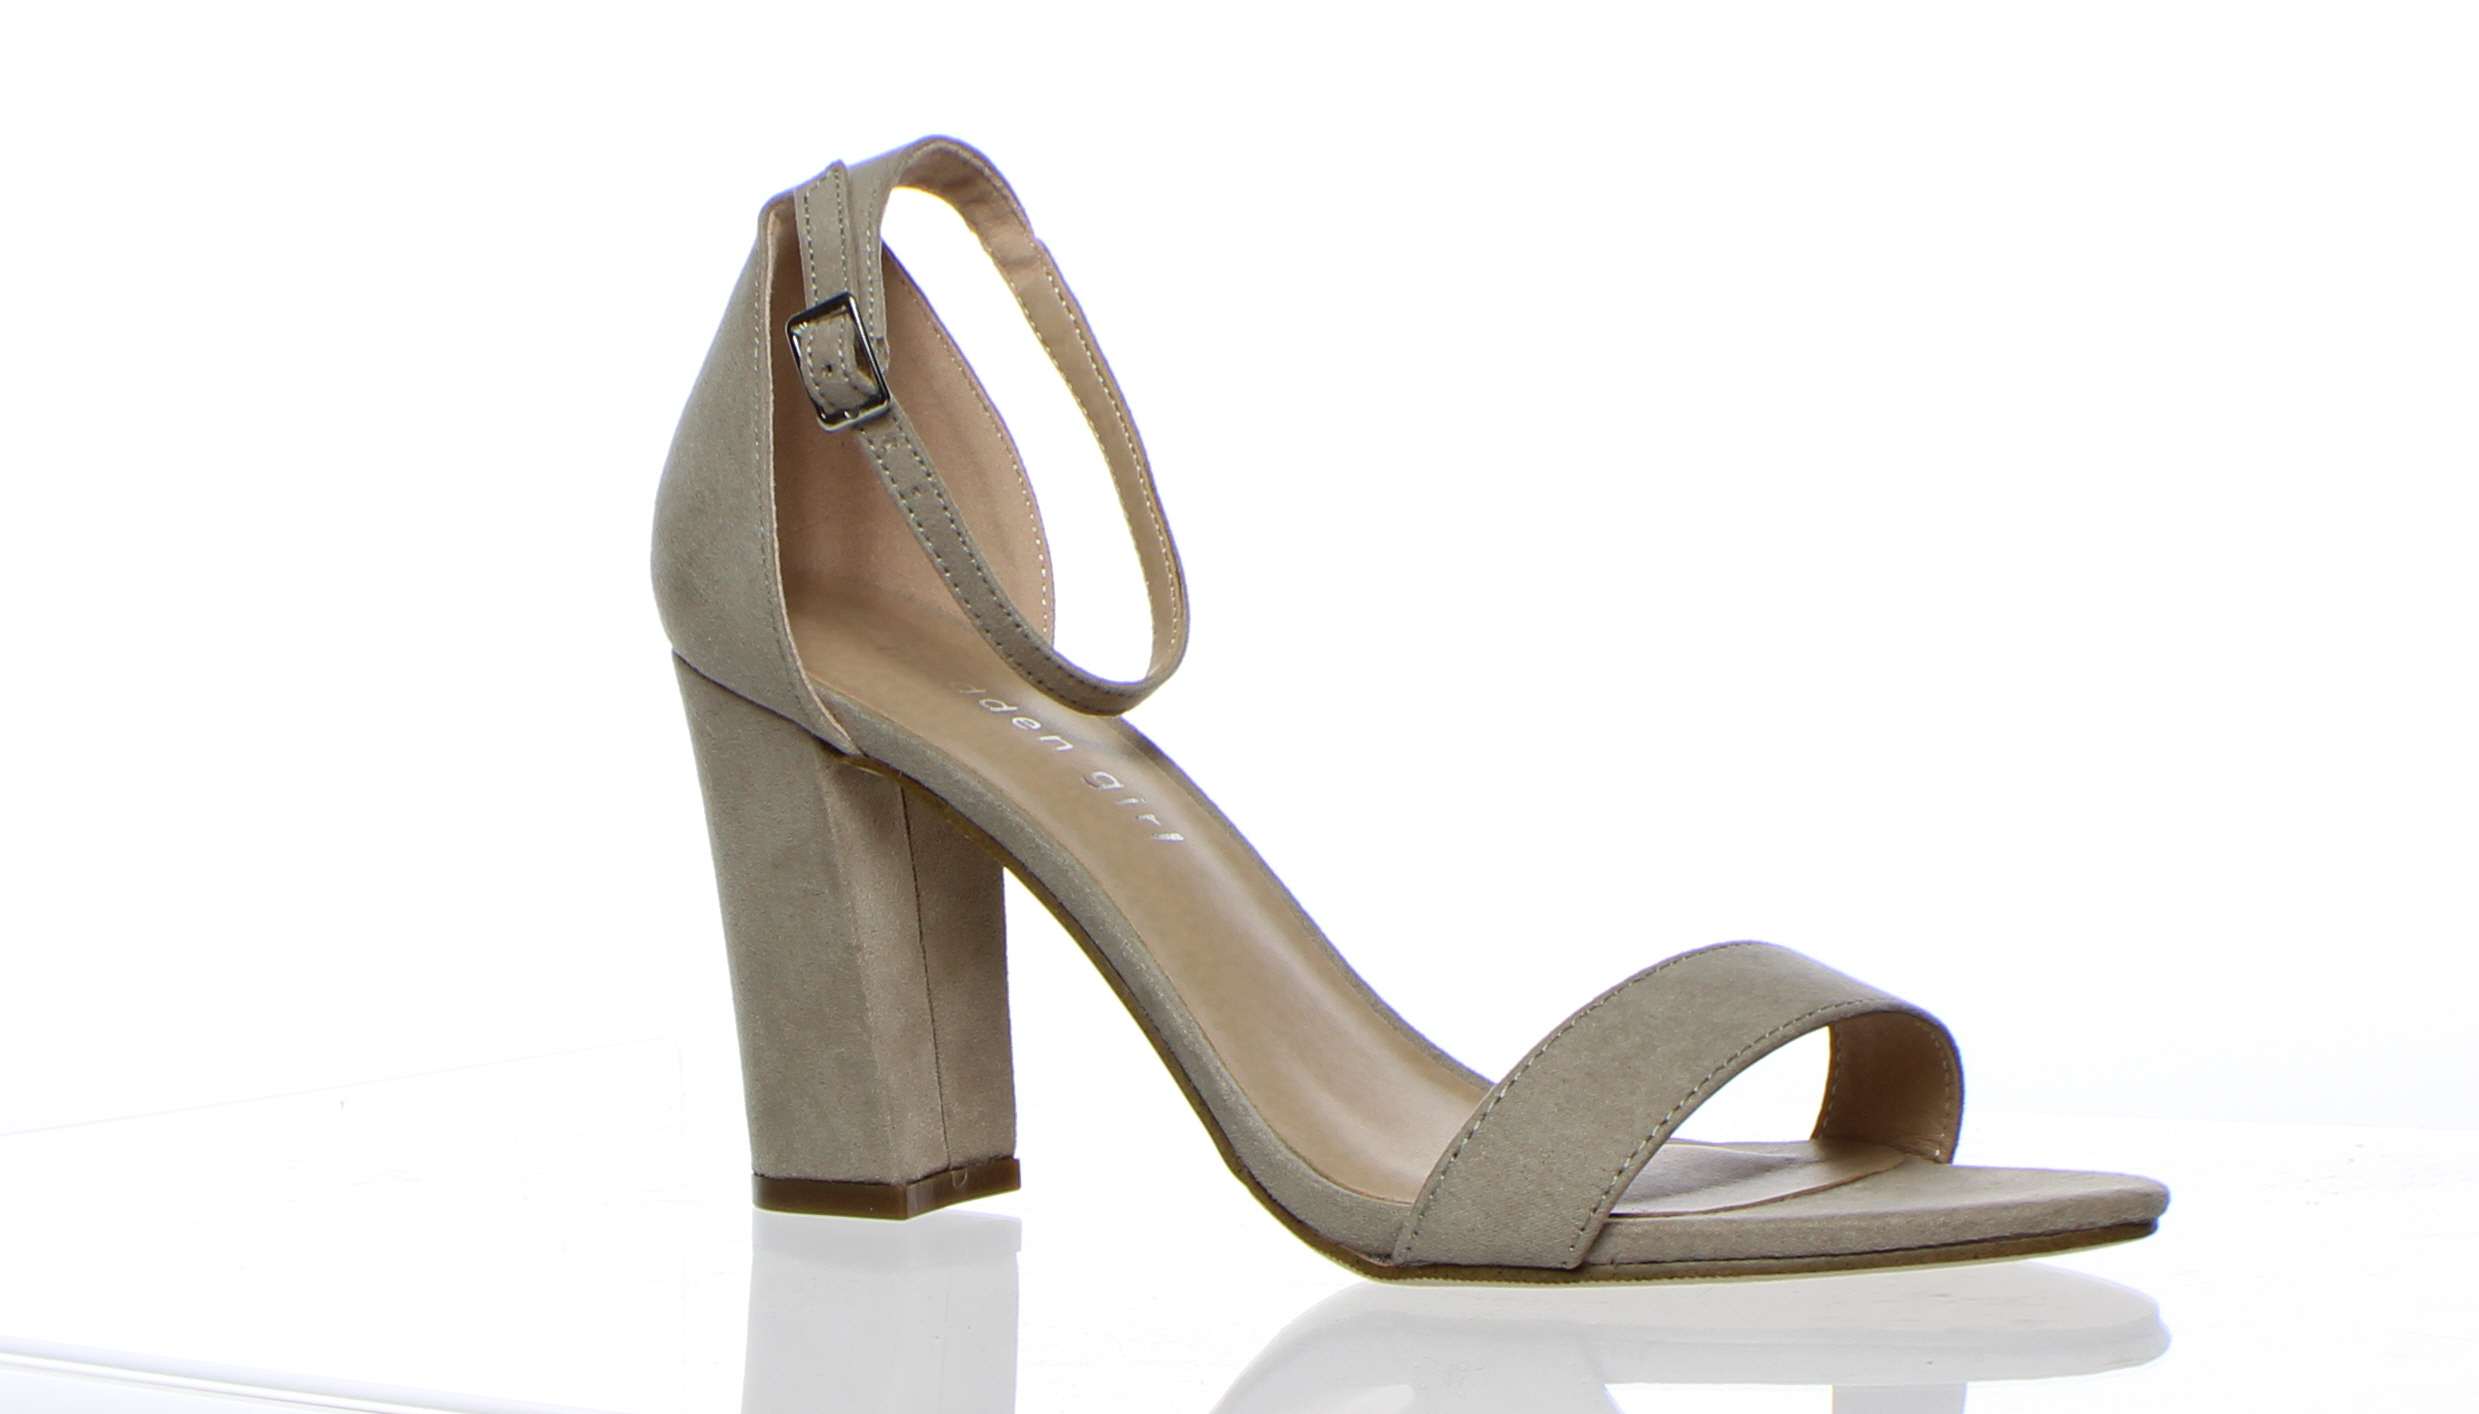 68ff1c243fc7 Details about Madden Girl Womens Beella Tan Ankle Strap Heels Size 8  (183975)